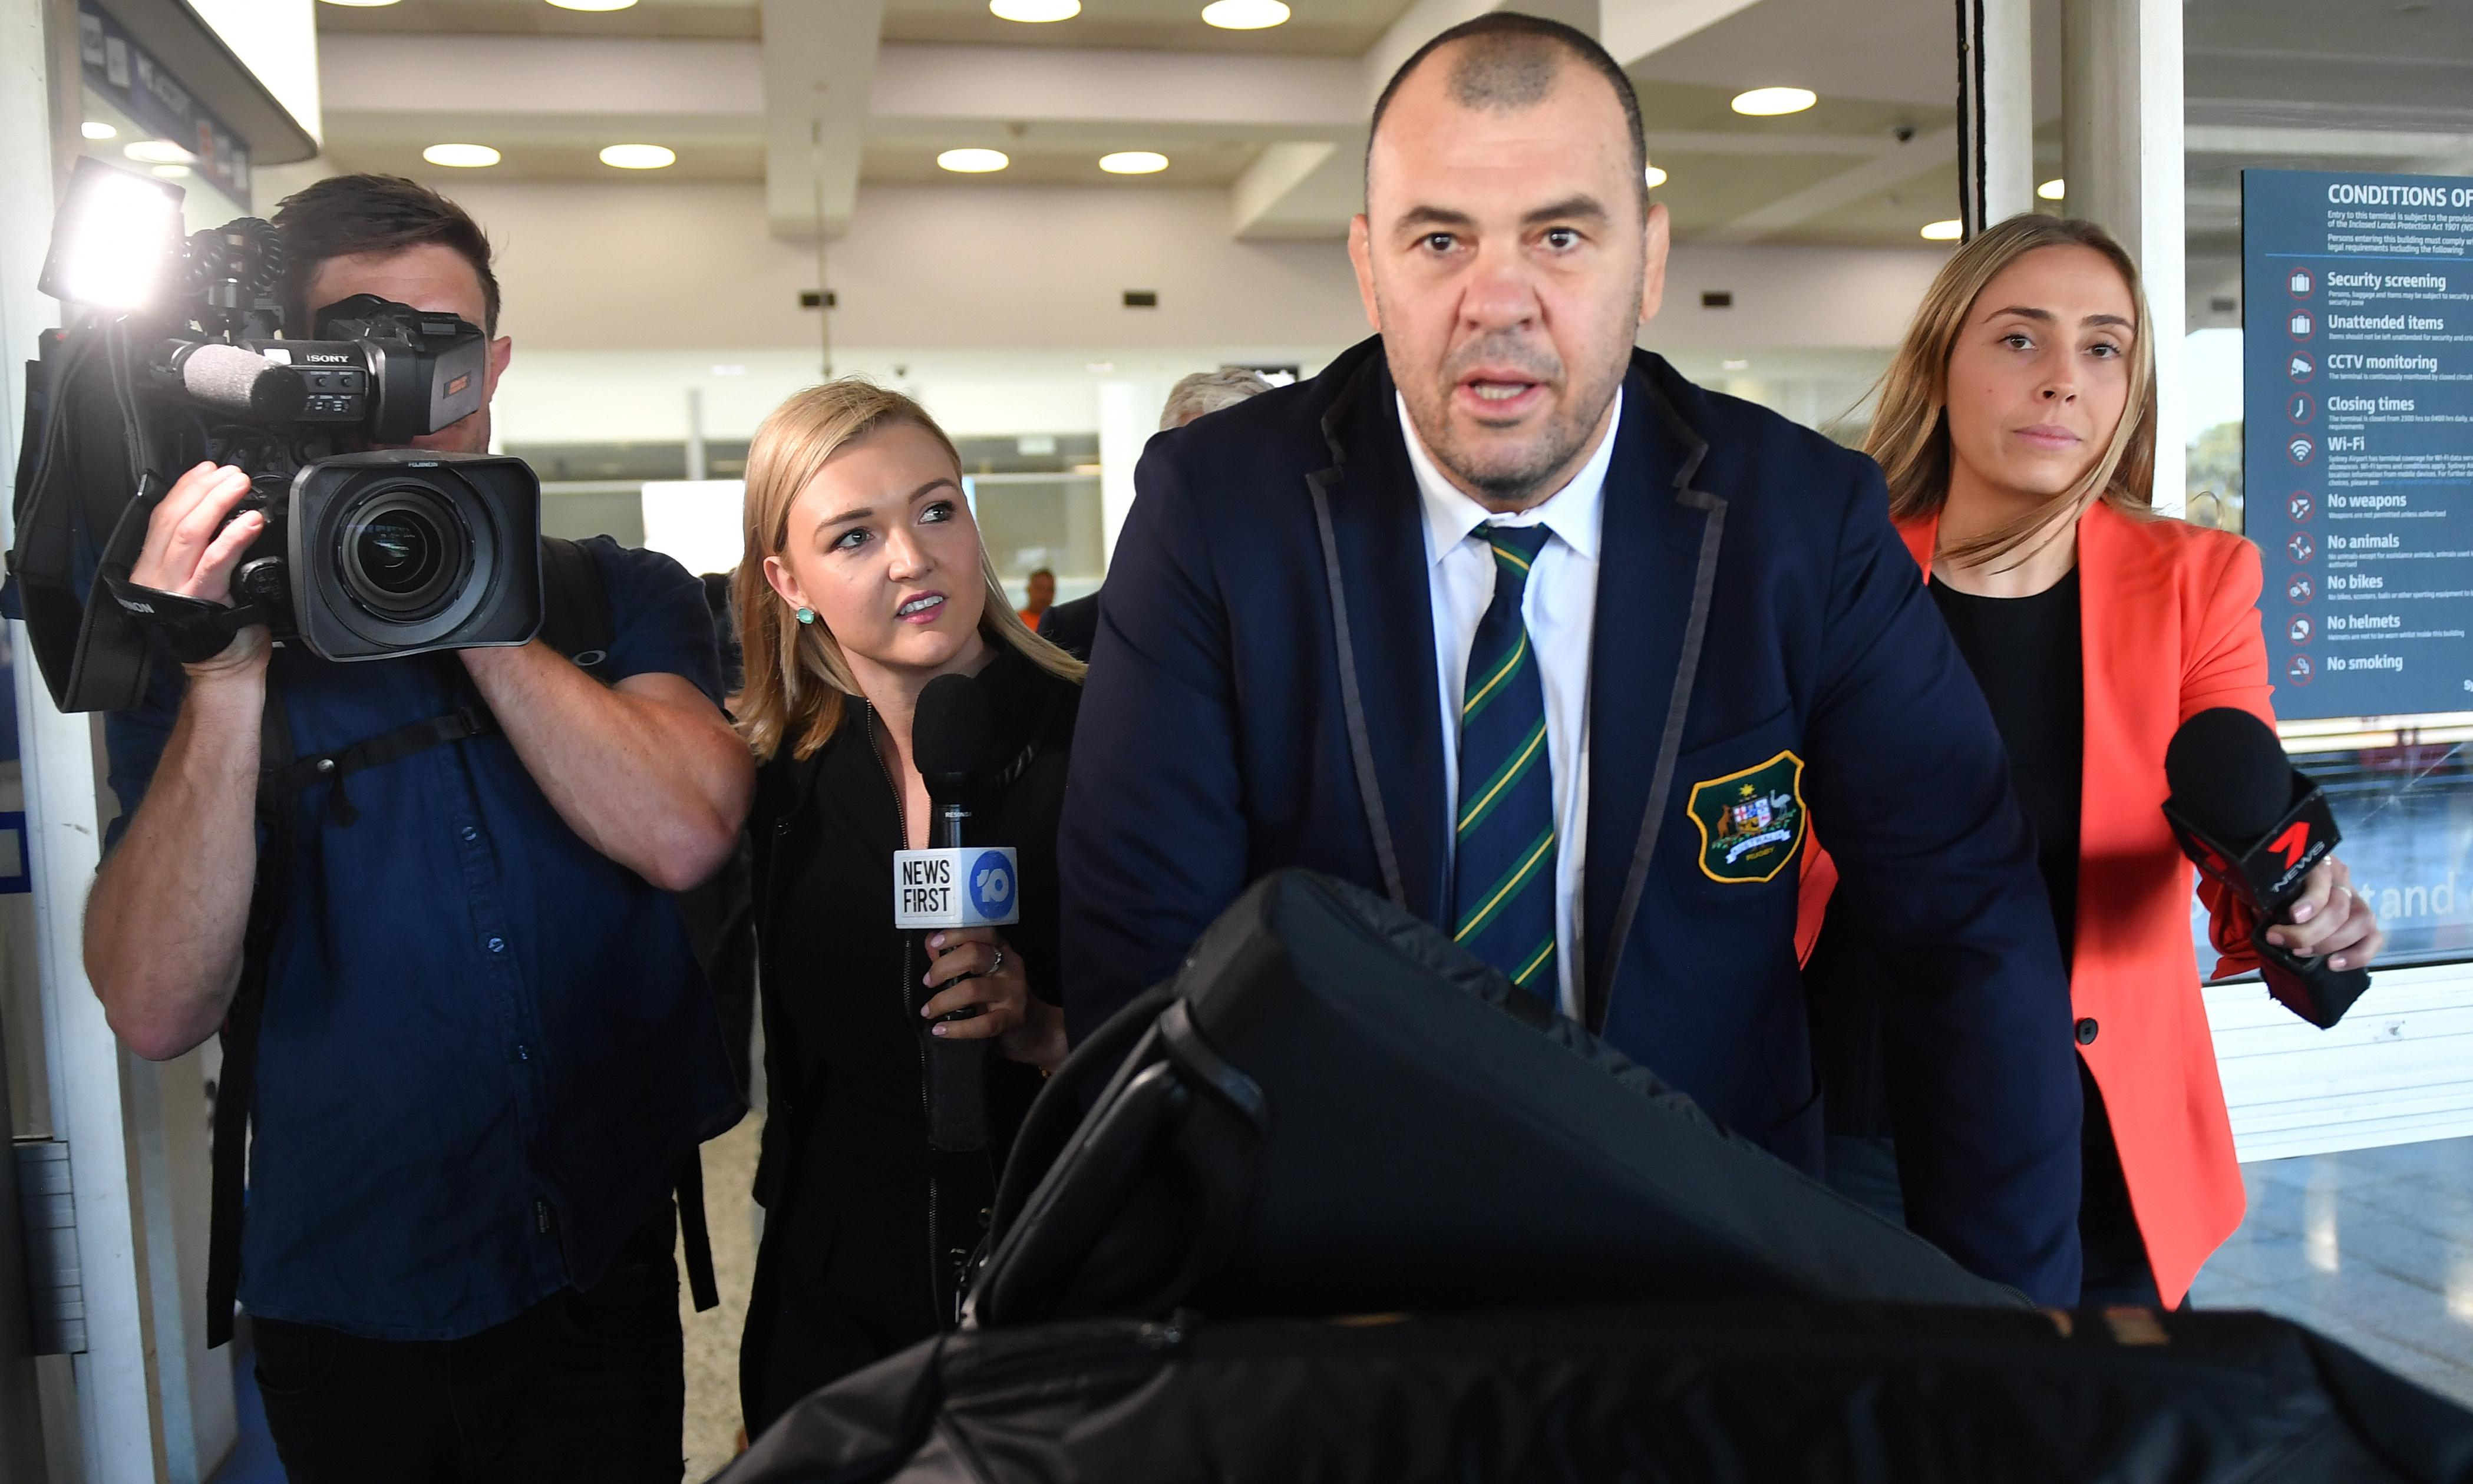 Michael Cheika says an Australian should replace him as Wallabies coach